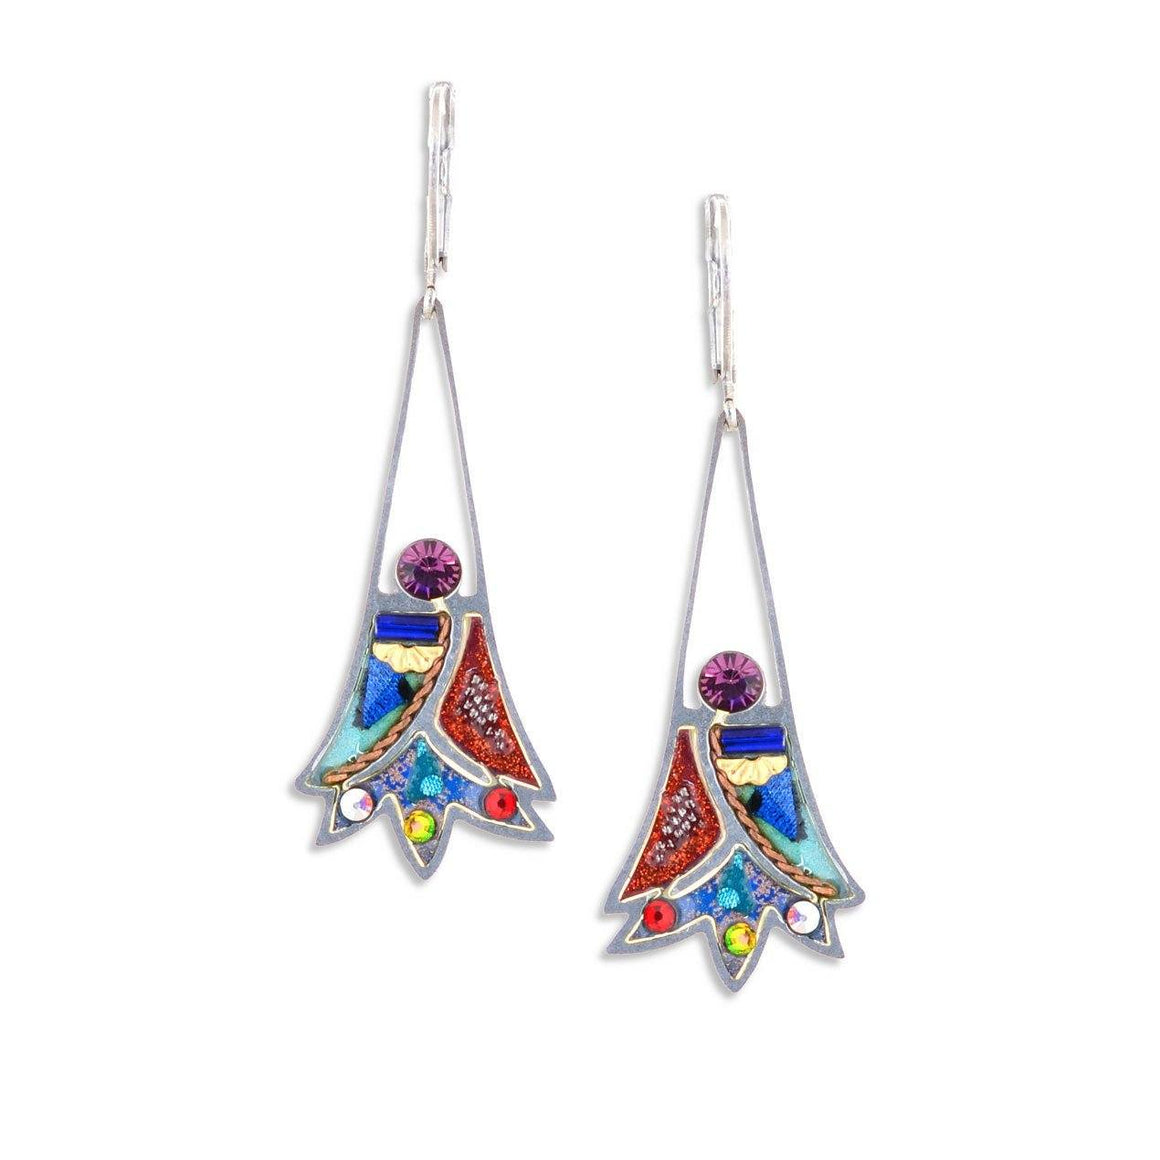 Earrings - Artistic Colorful